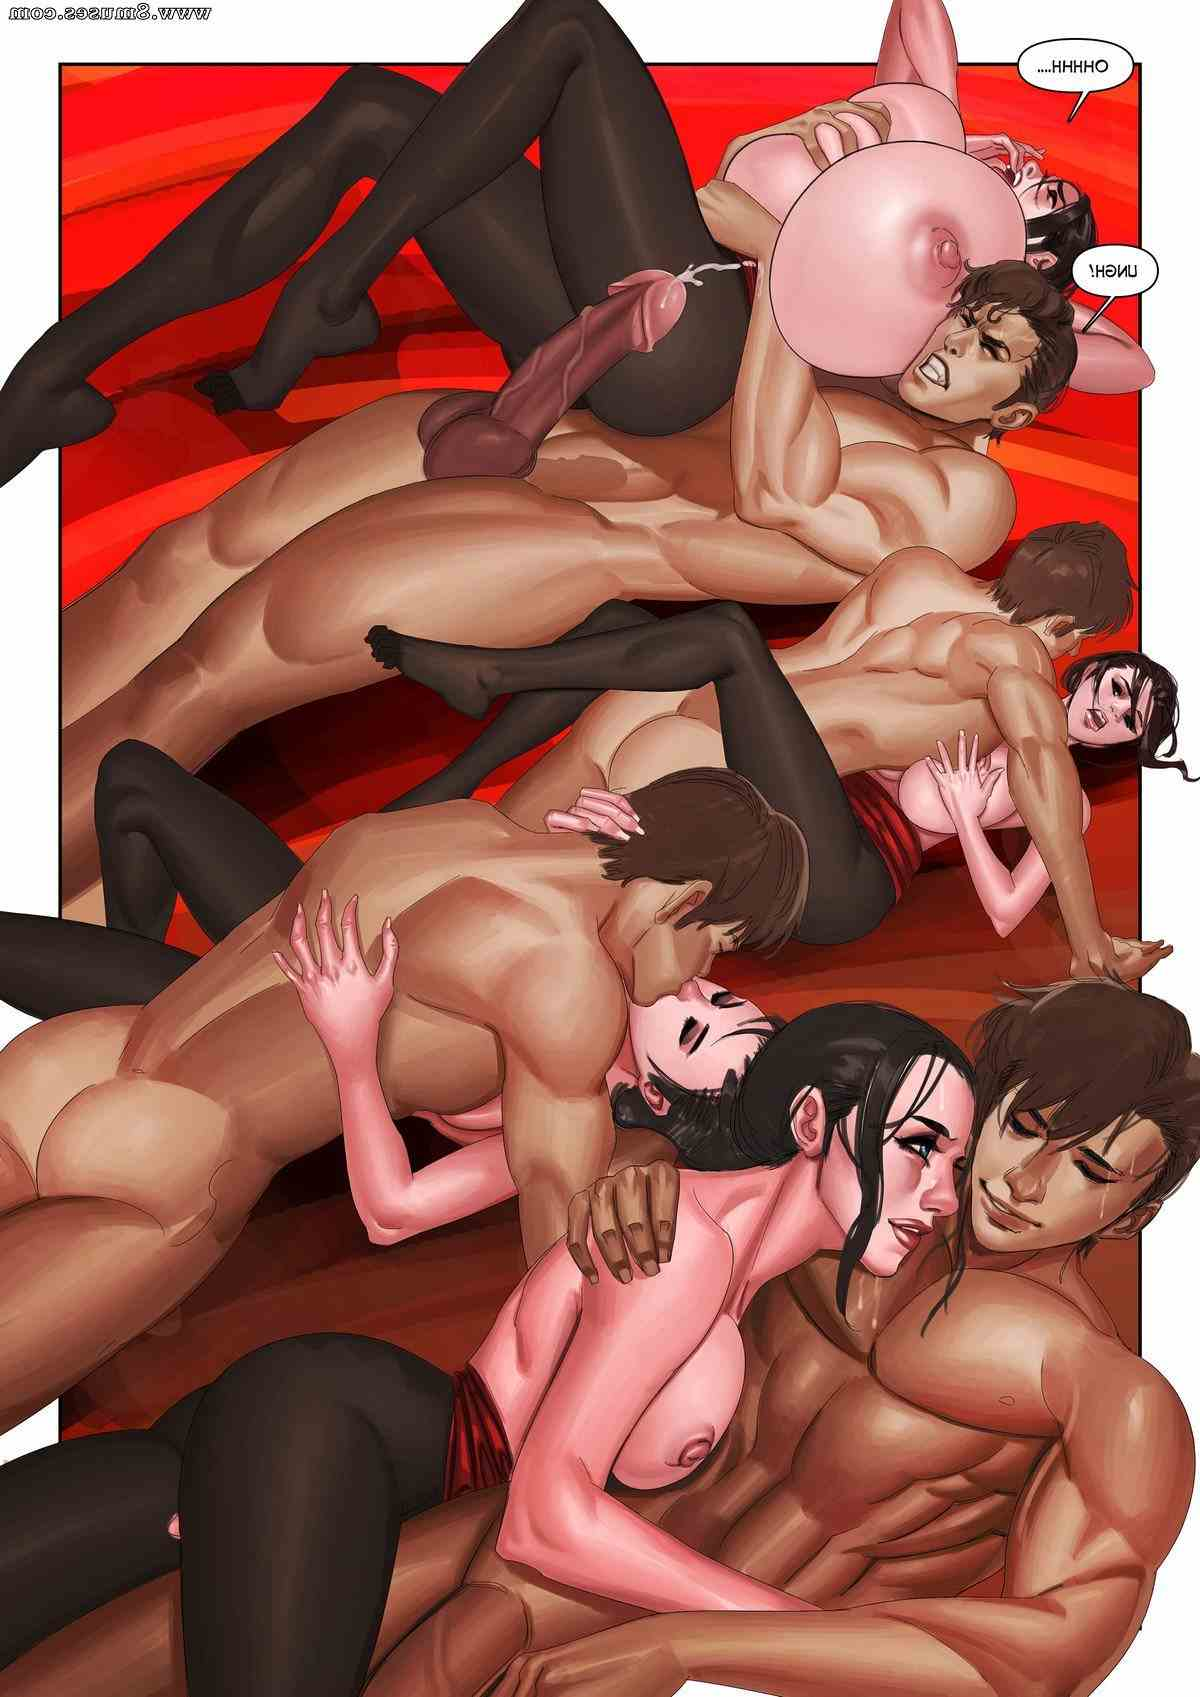 Expansionfan-Comics/Genetic-Destiny Genetic_Destiny__8muses_-_Sex_and_Porn_Comics_16.jpg